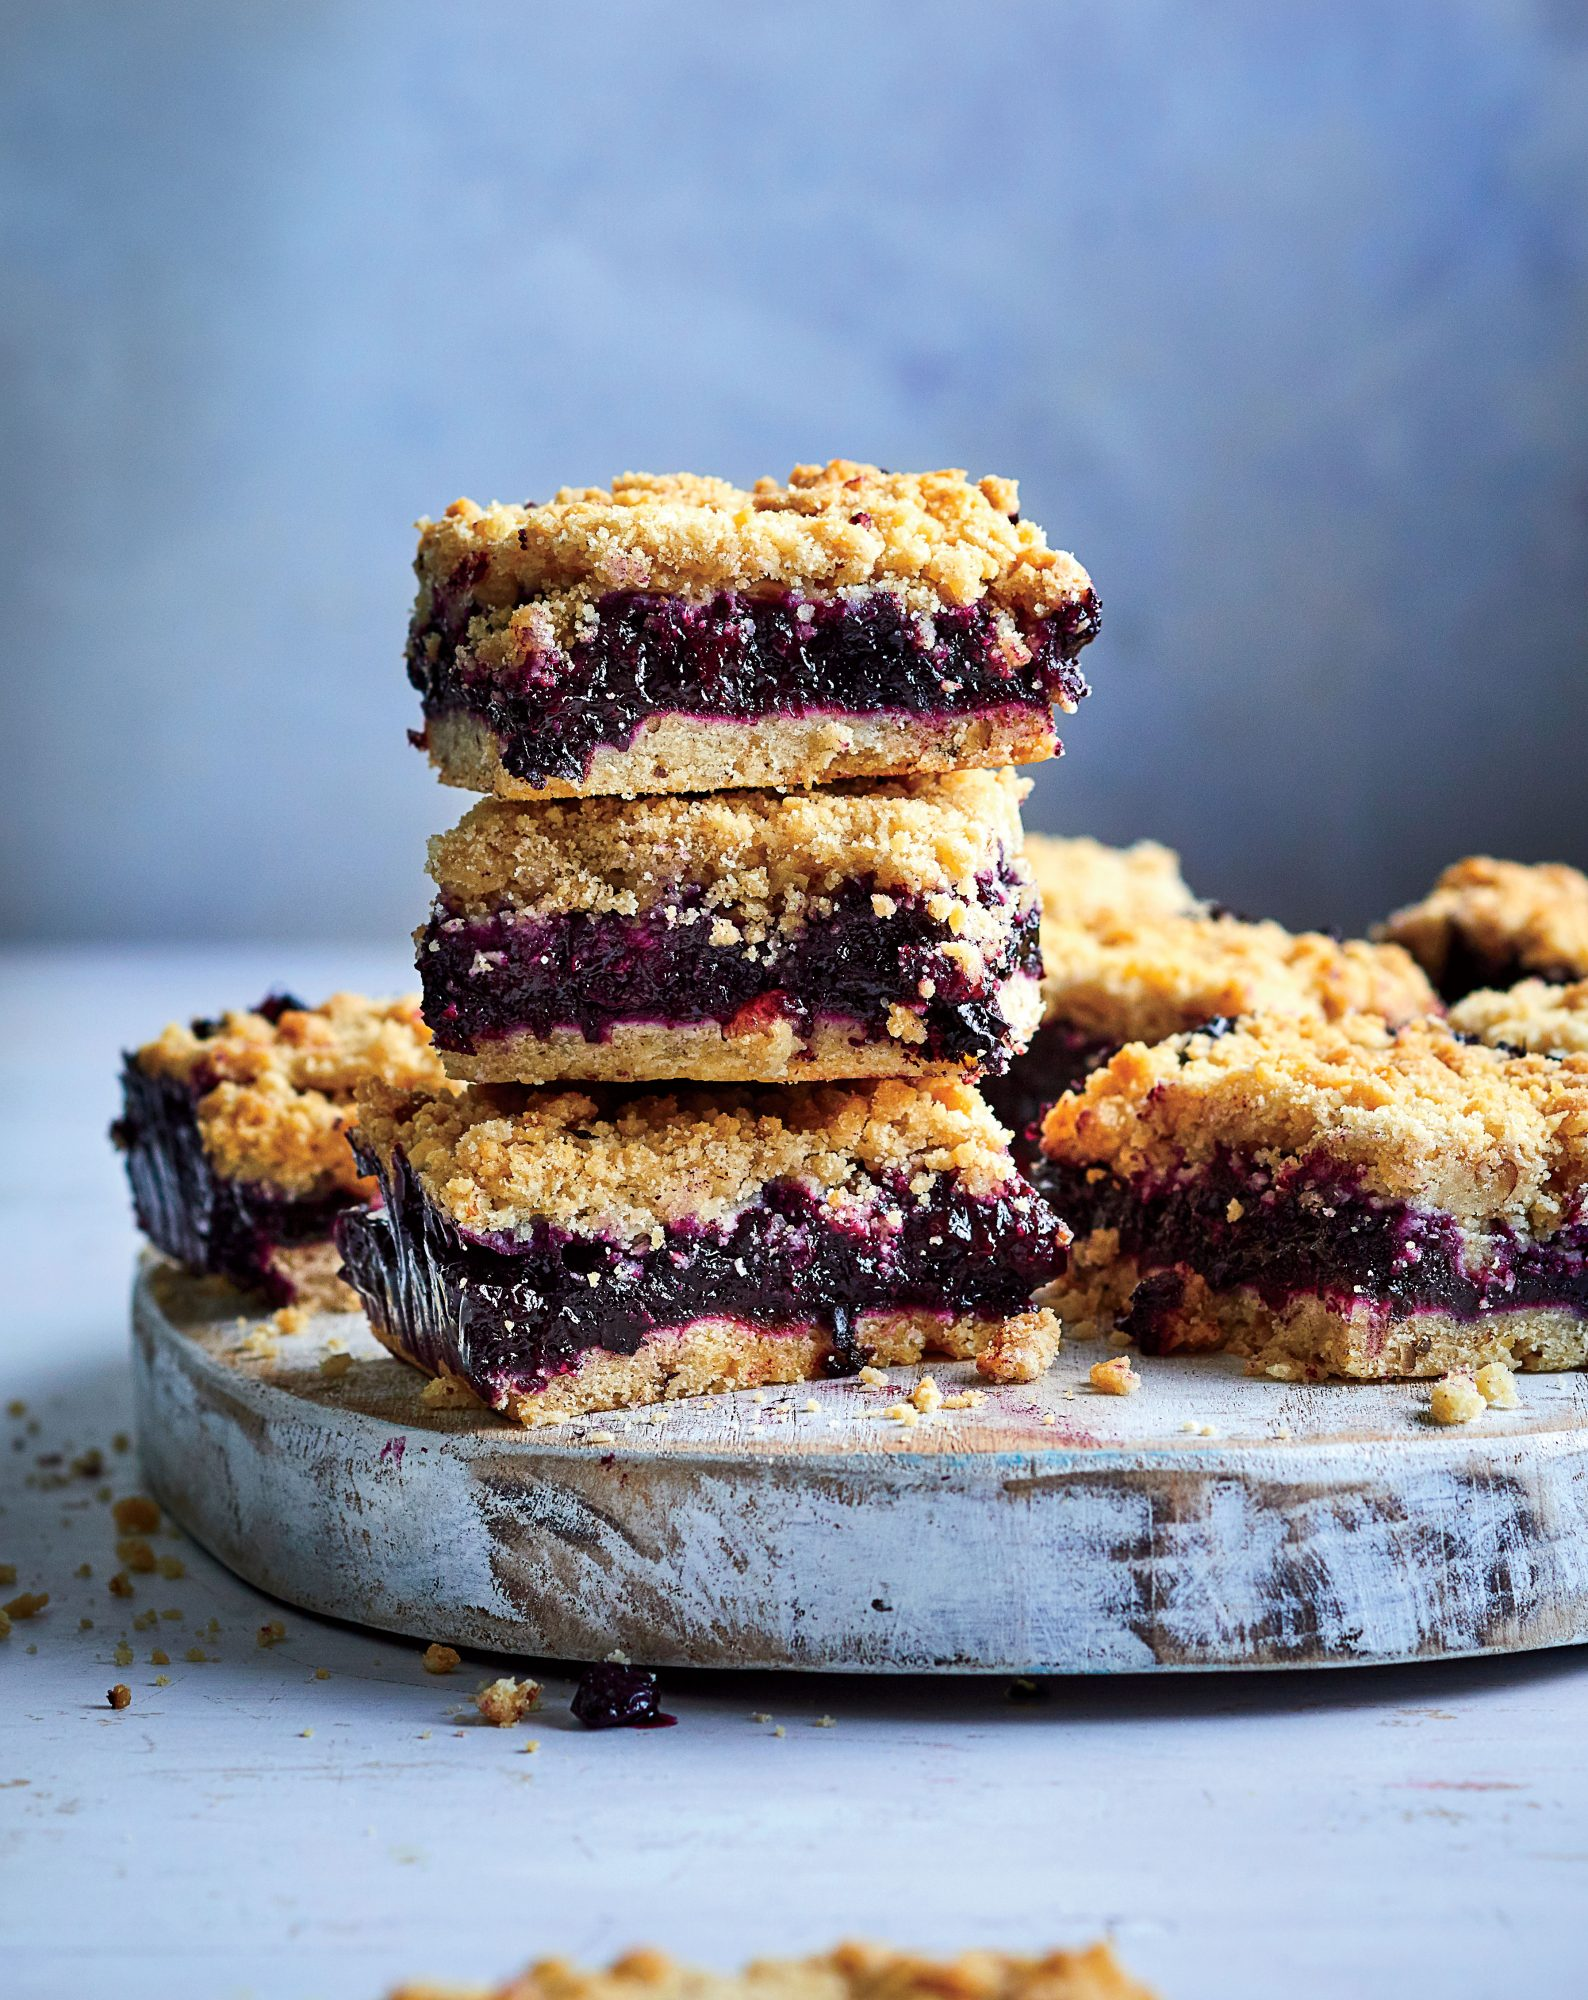 Blueberry-Lemon Crunch Bars